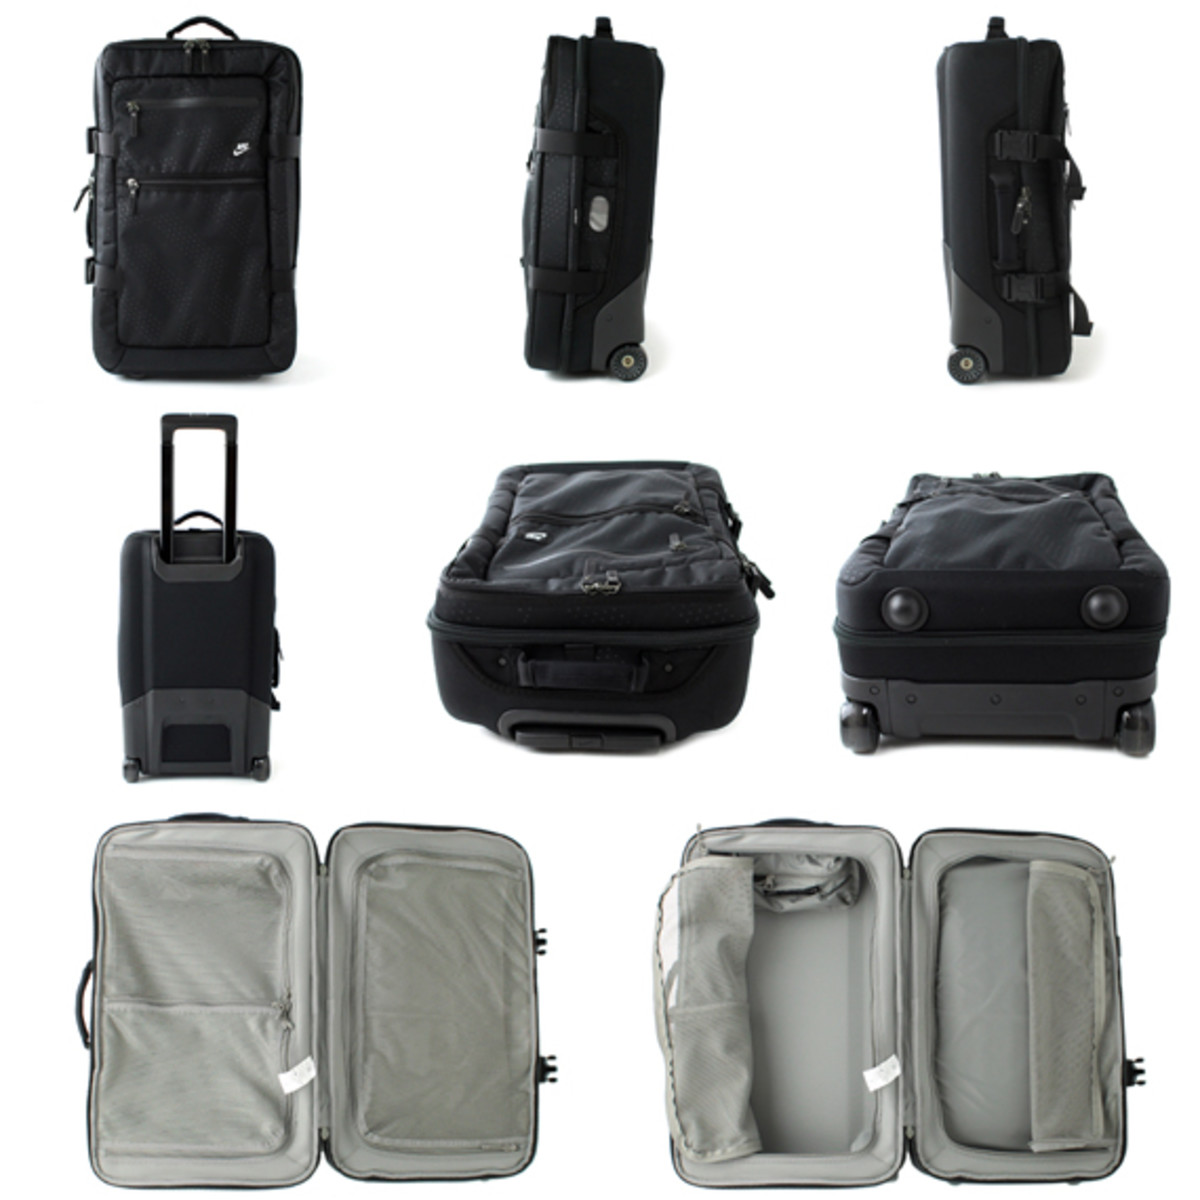 czech nike fiftyone49 luggage collection 02 1bb42 95f87 62623f1d28e4a